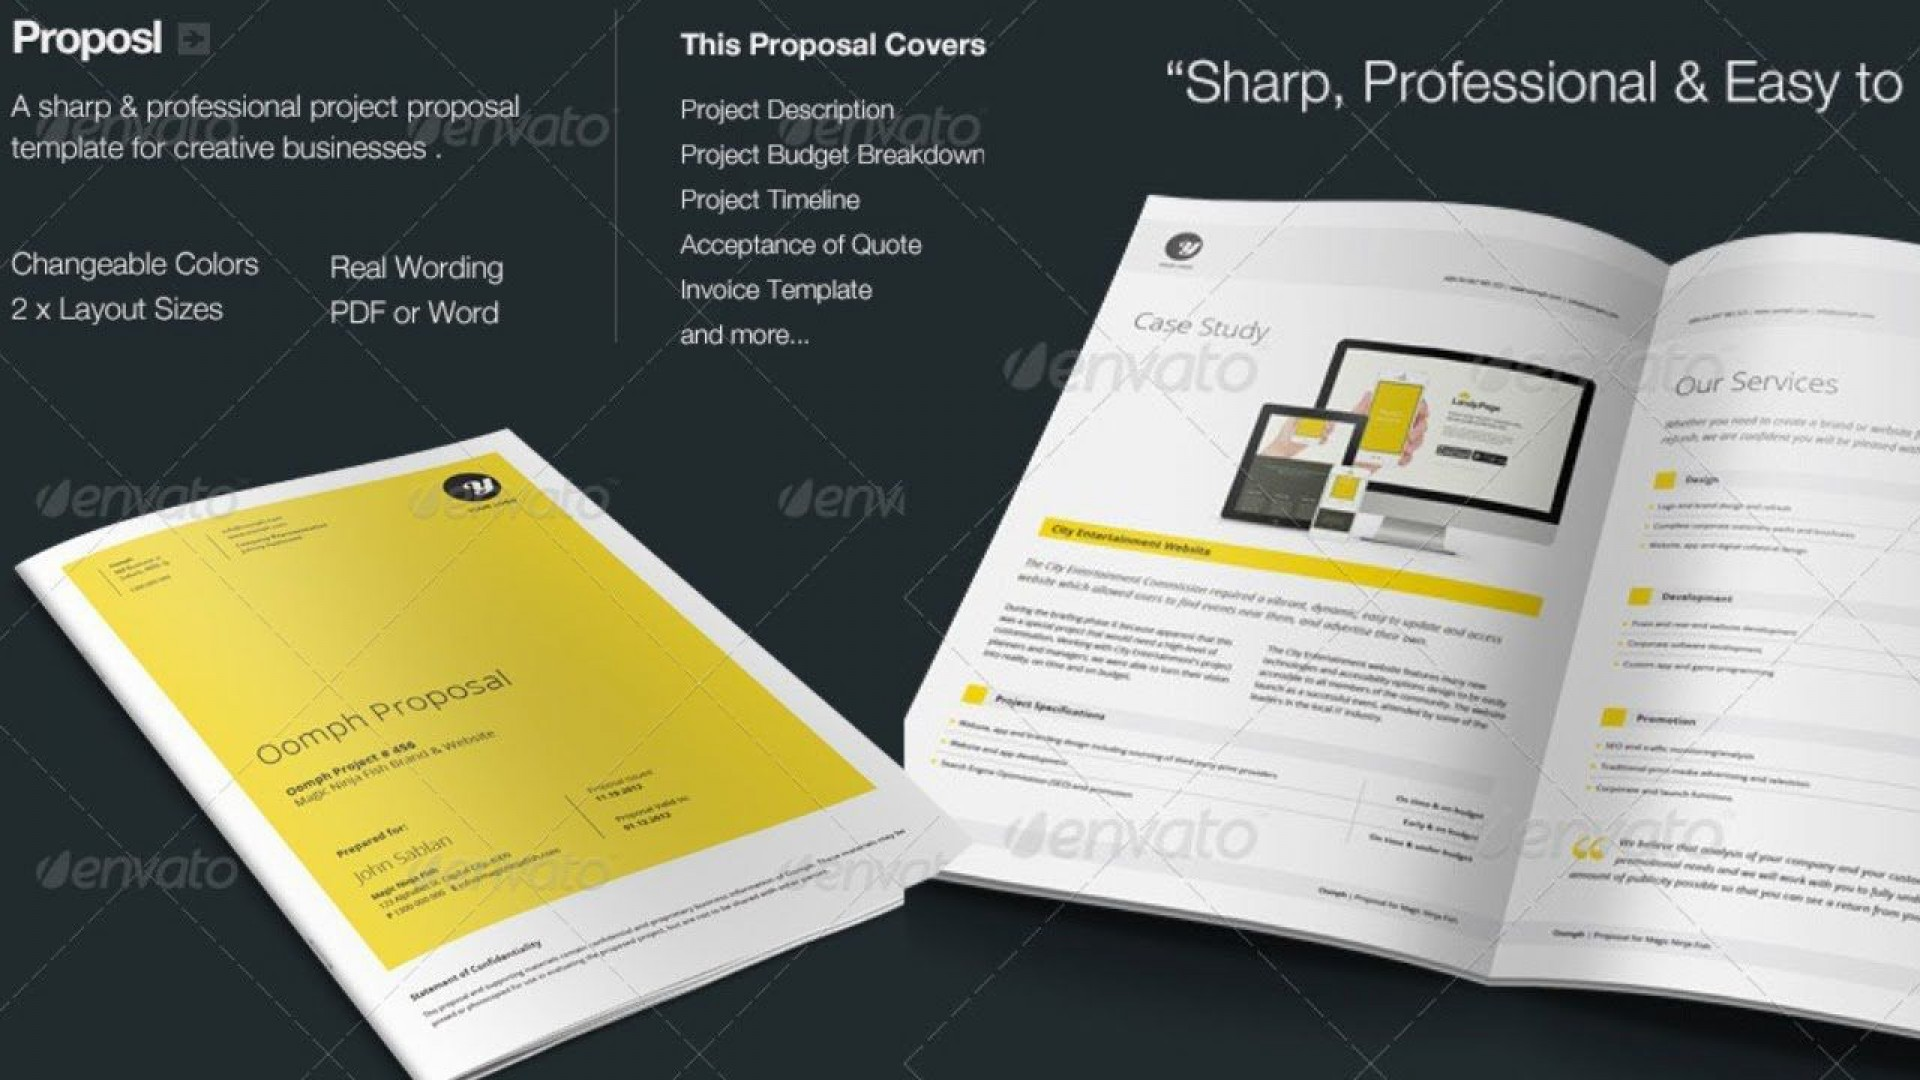 007 Stunning Microsoft Word Proposal Template Free High Resolution  Project Download Budget1920